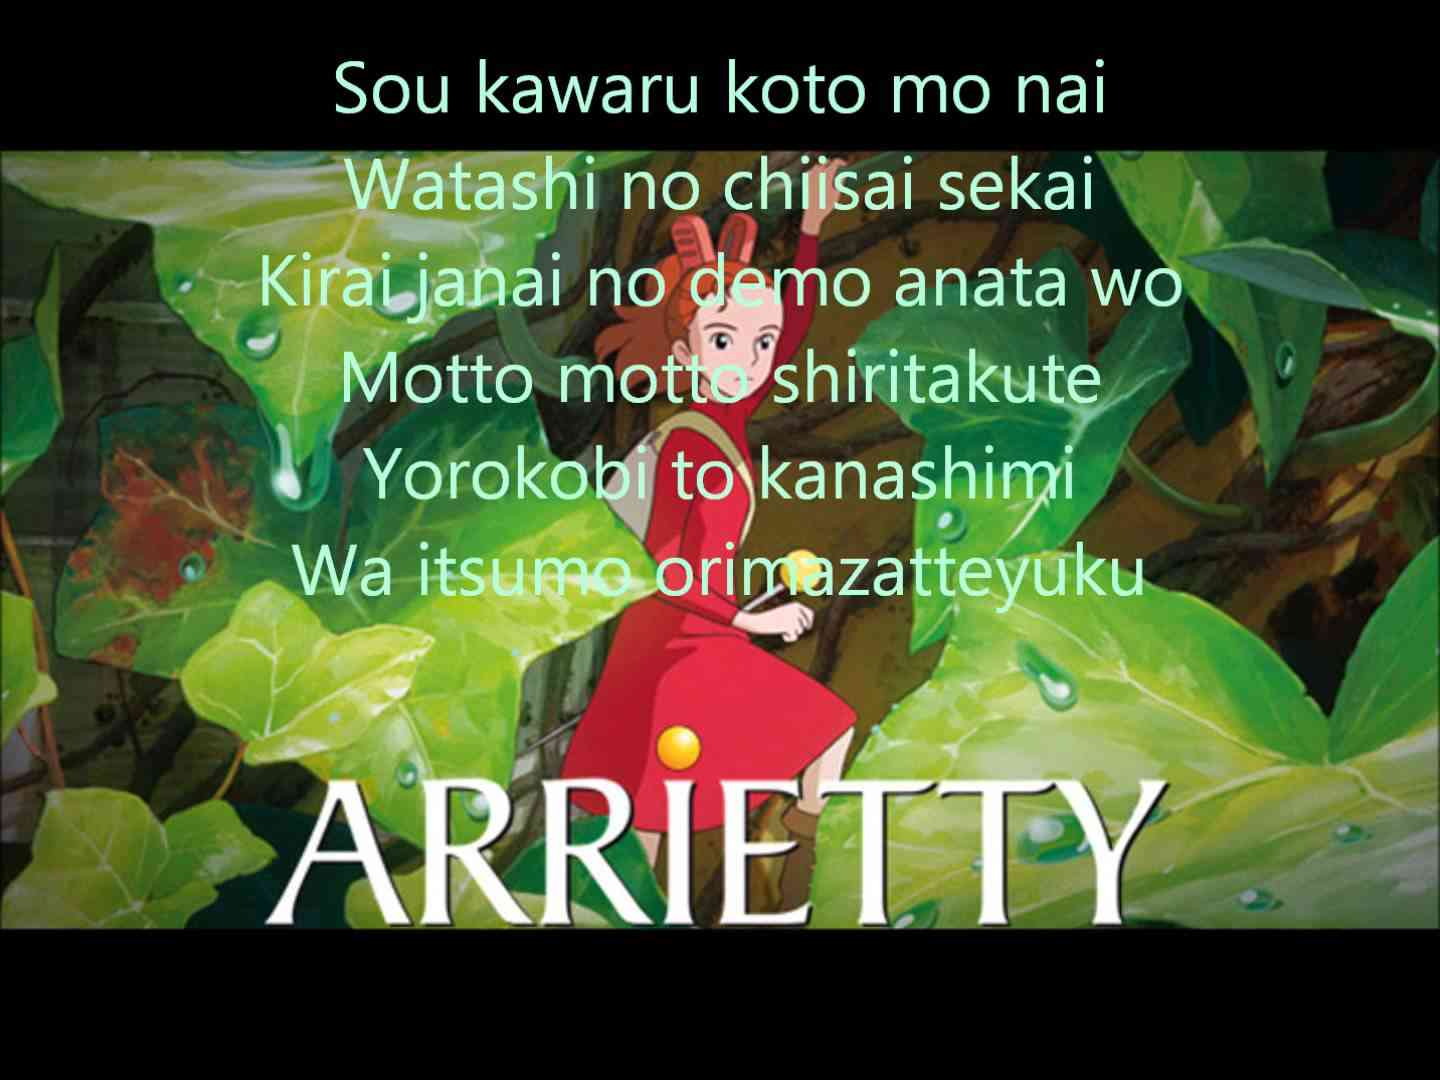 Arrietty's Song  - YouTube